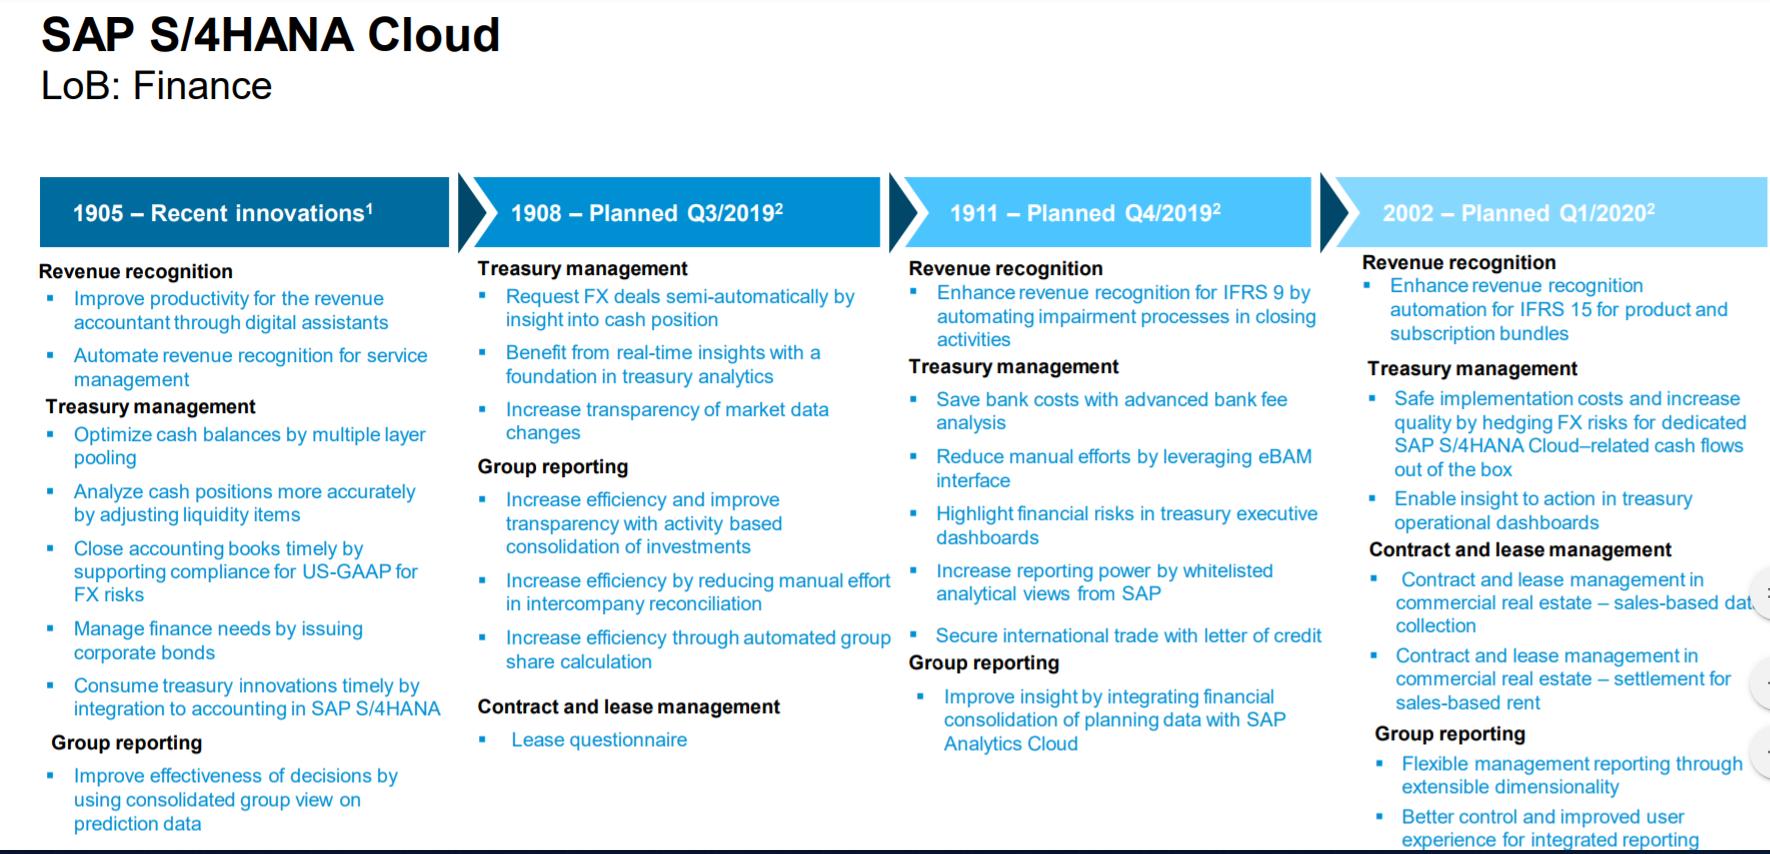 What is the road map for SAP S/4HANA Cloud?